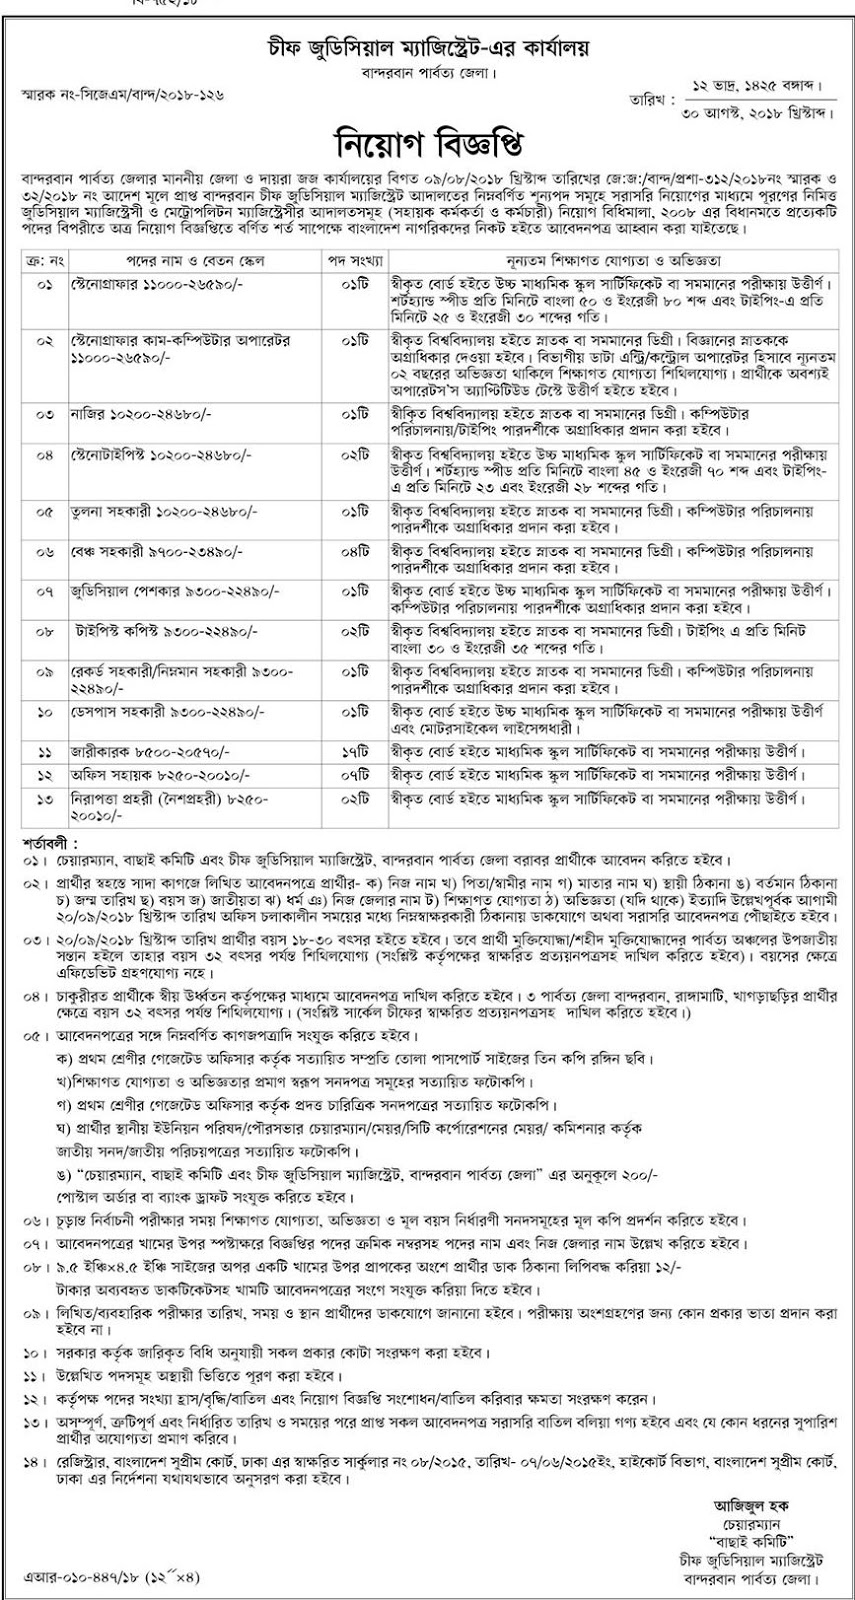 Chief Judicial Magistrate's Office, Bandarban Hill District Job Circular 2018